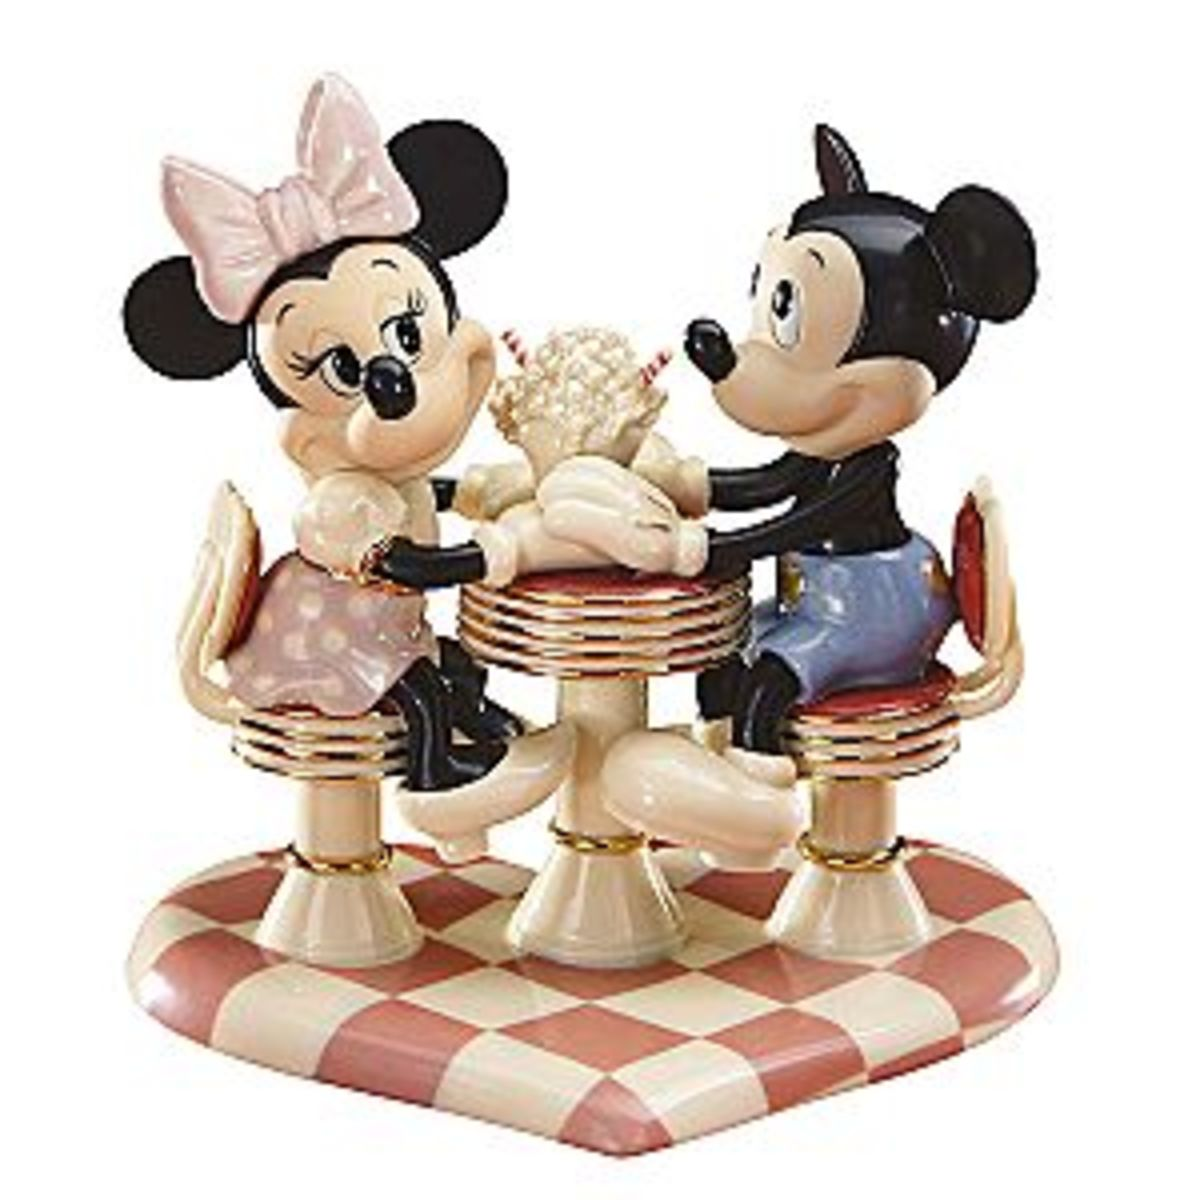 Mickey and Minnie on a date with ice cream